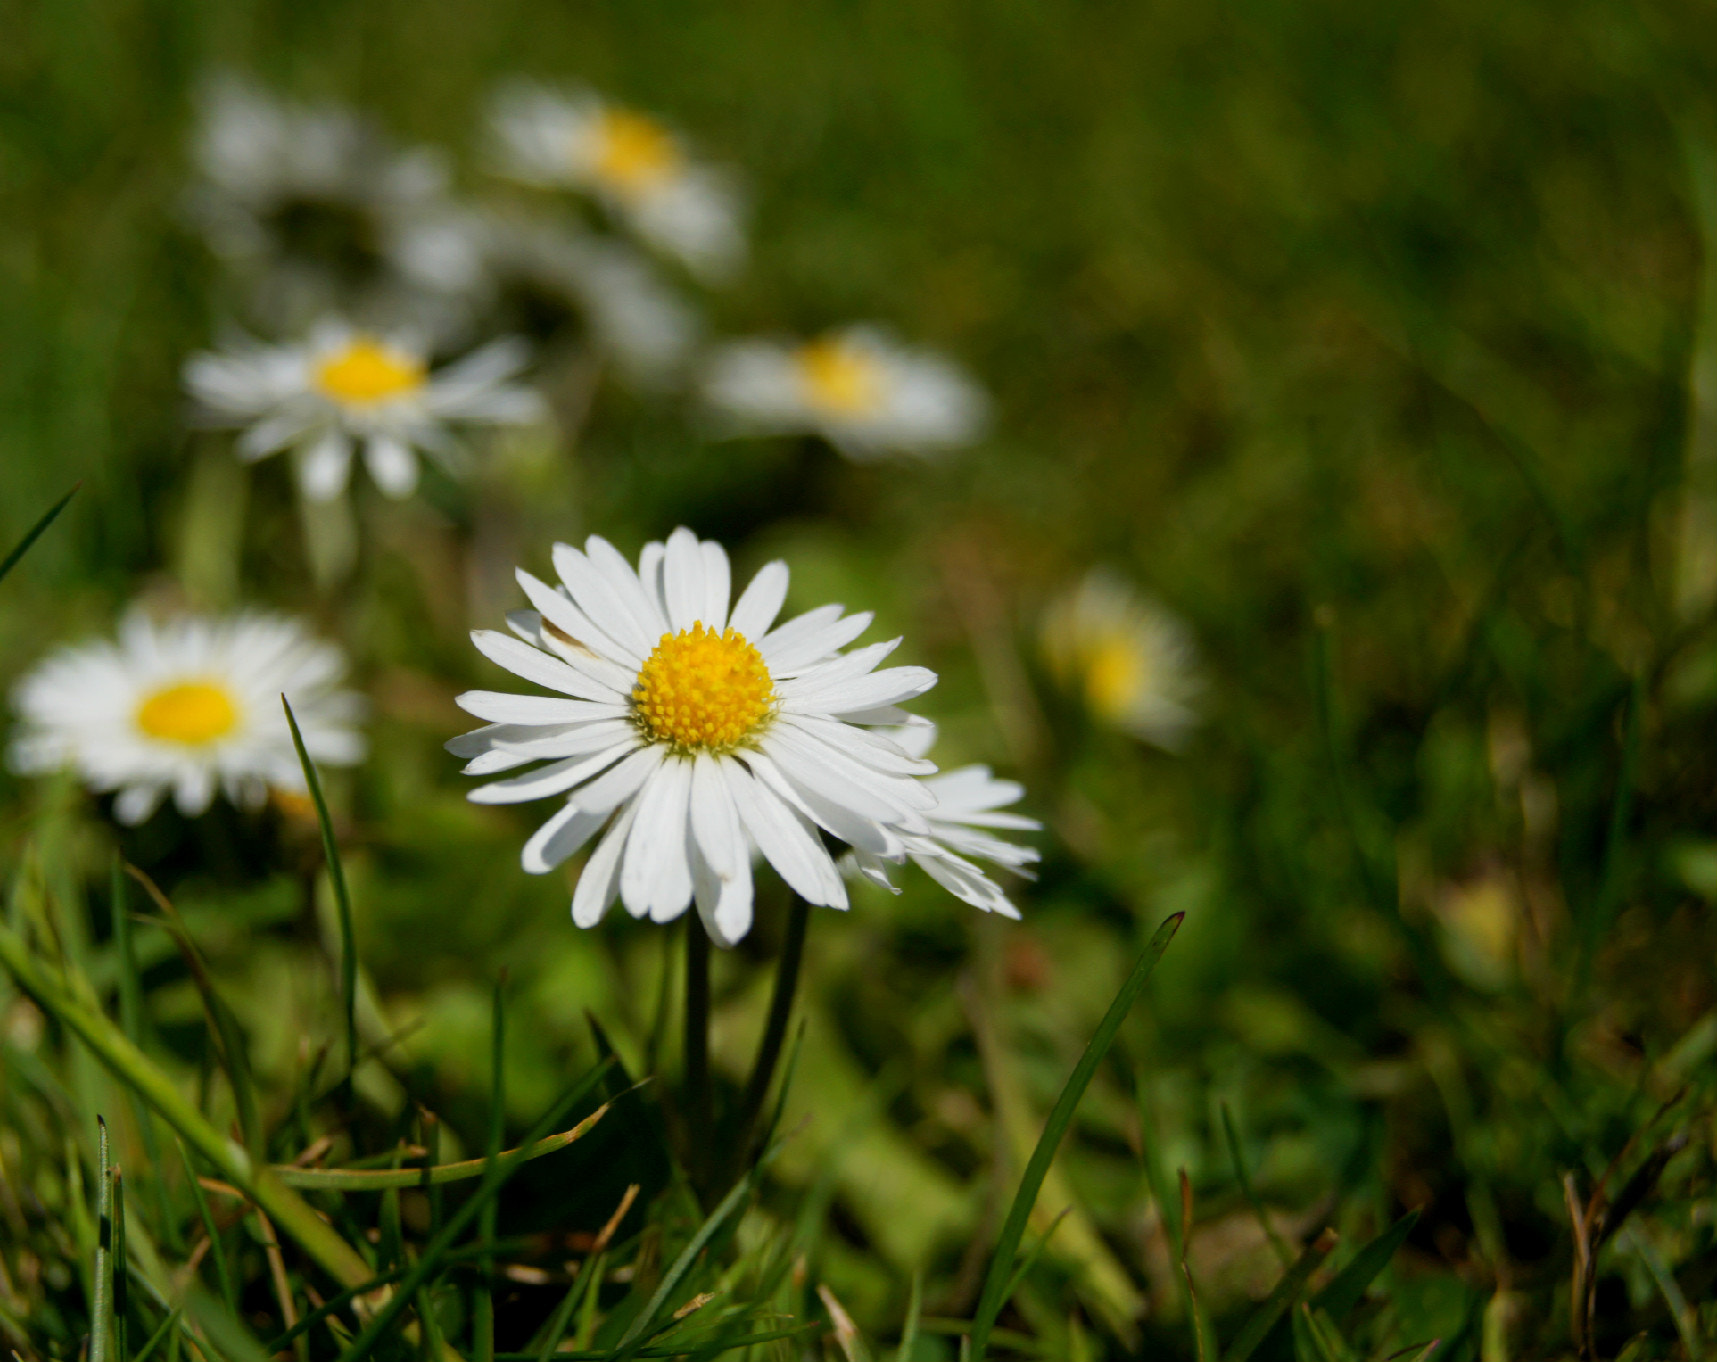 Photograph Daisy's II by Adhib M on 500px